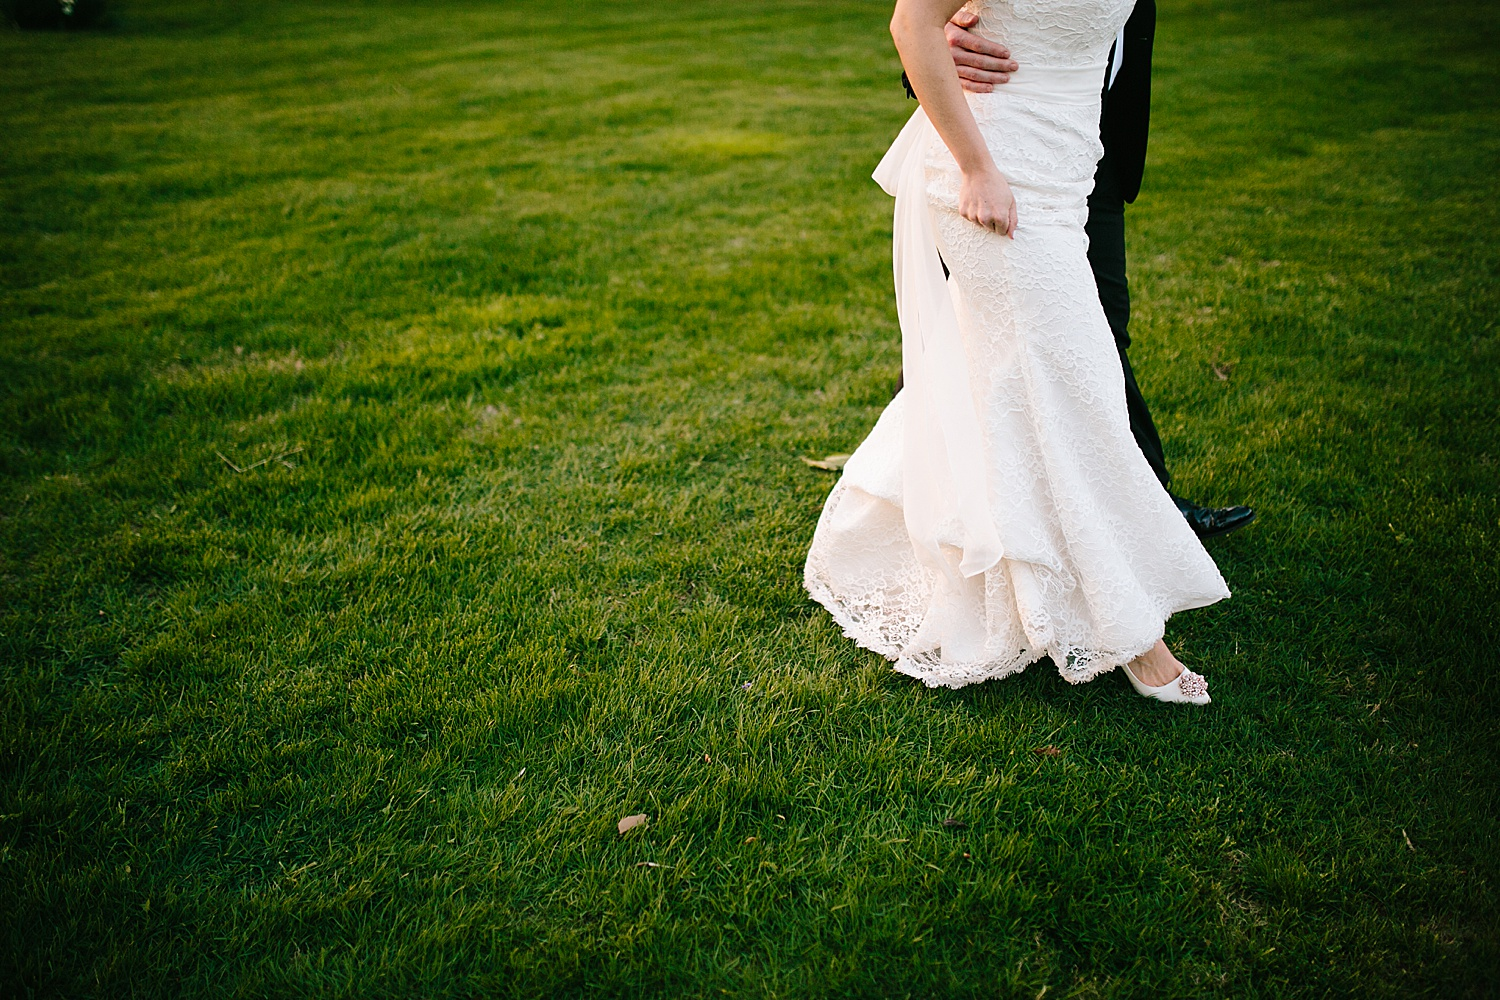 caitlingmarc_hotelduvillage_newhope_estate_spring_wedding)image088.jpg